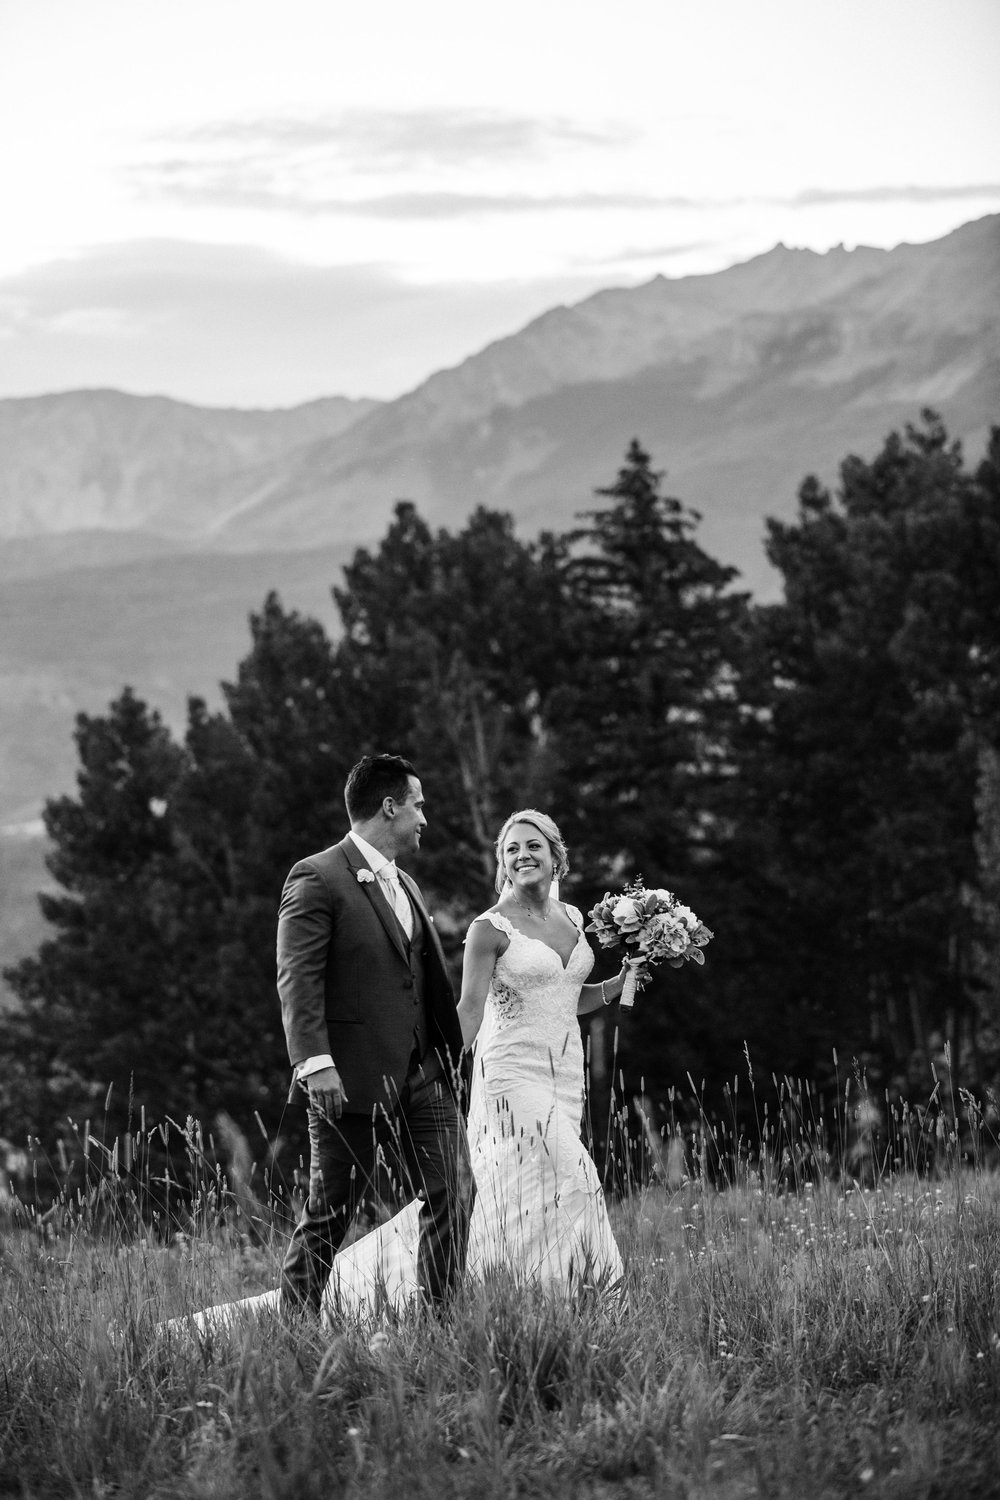 leahandashton-telluride-wedding-photography-0089.jpg